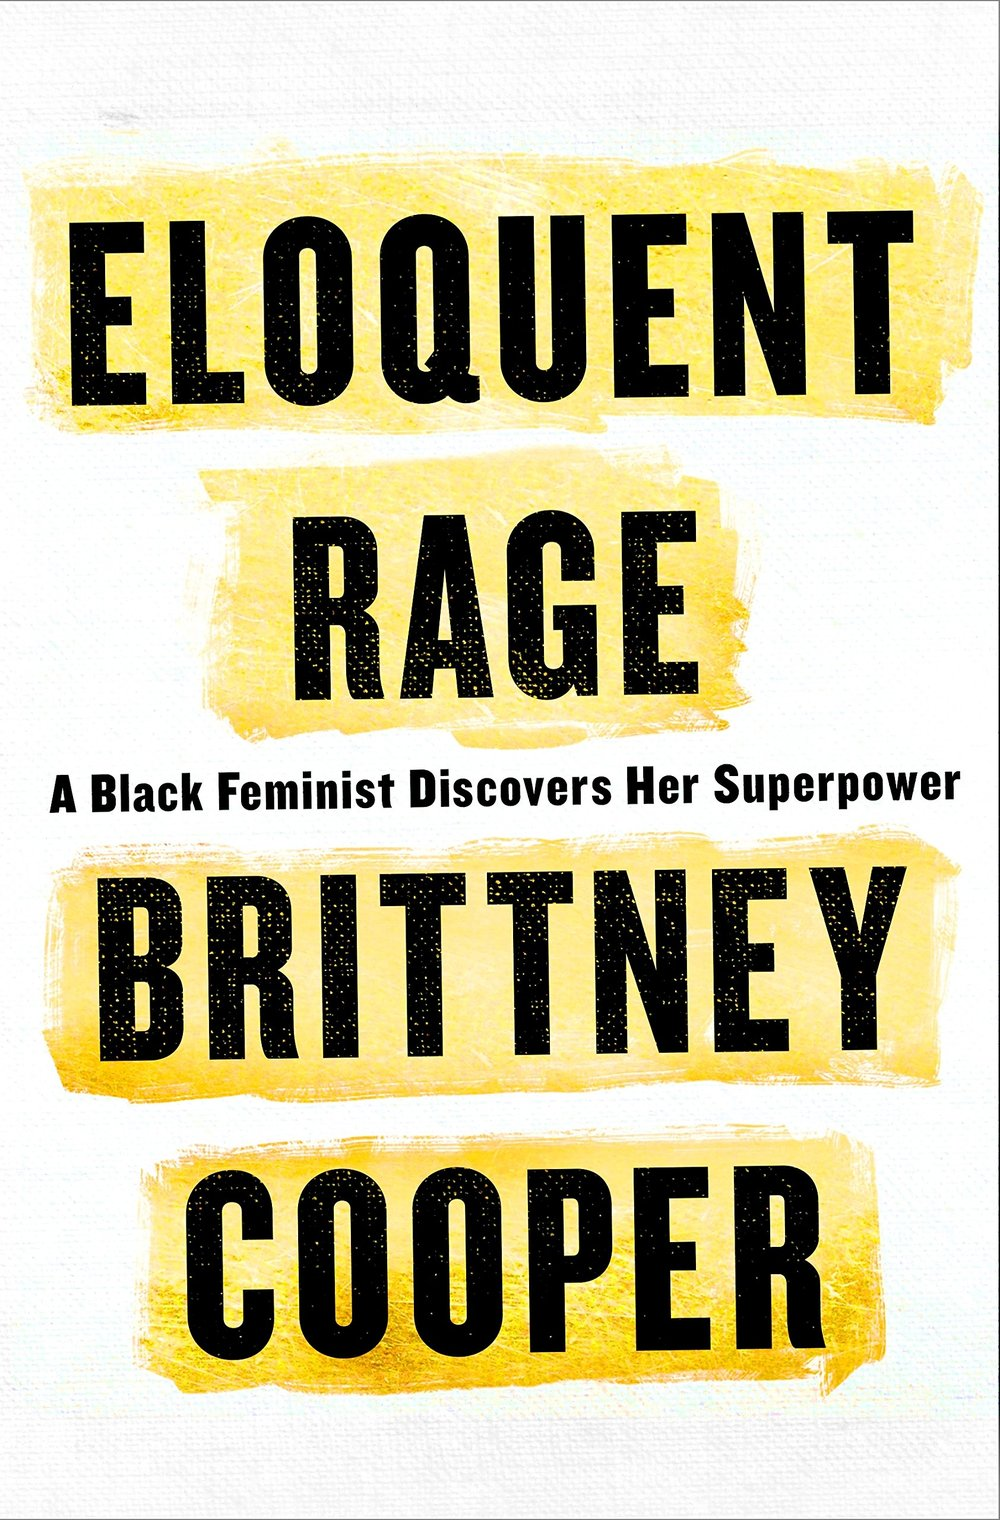 So what if it's true that Black women are mad as hell? They have the right to be. In the Black feminist tradition of Audre Lorde, Brittney Cooper reminds us that anger is a powerful source of energy that can give us the strength to keep on fighting. Eloquent rage keeps us all honest and accountable. It reminds women that they don't have to settle for less. This book argues that ultimately feminism, friendship, and faith in one's own superpowers are all we really need to turn things right side up again.